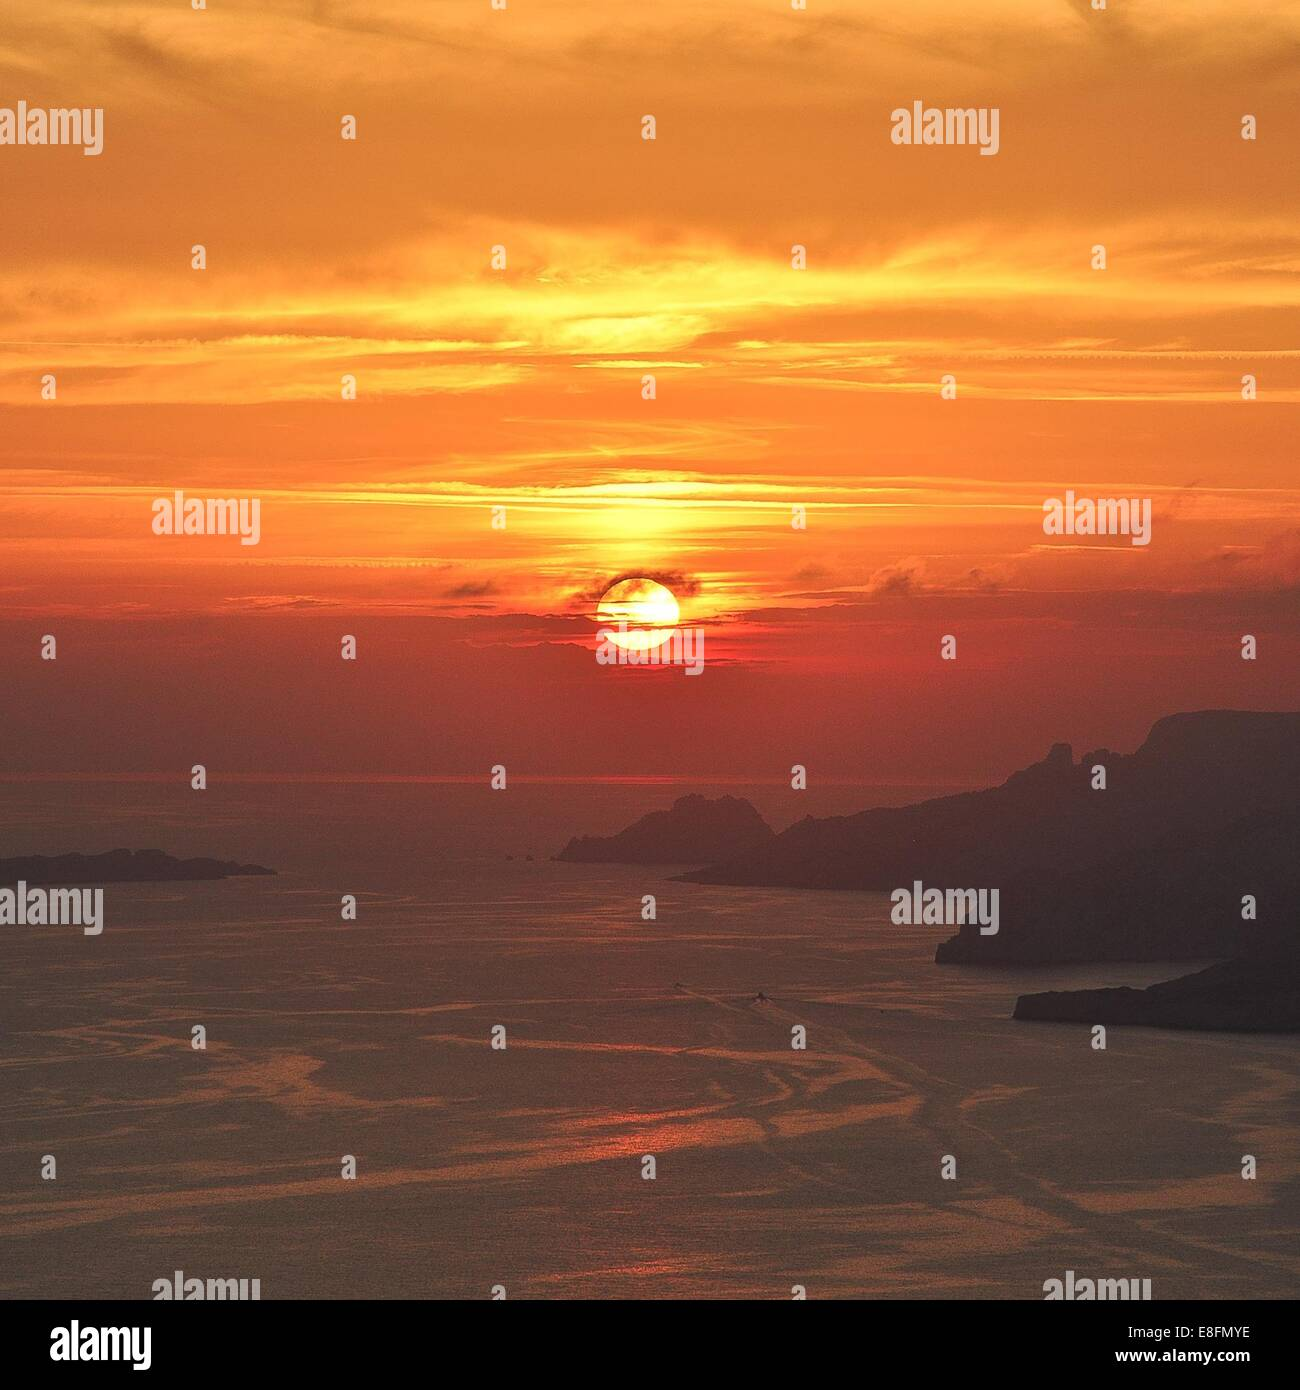 France, Provence-Alpes-Cote d'Azur, Bouches-du-Rhone, Marseille, Cassis, Sunset over sea - Stock Image